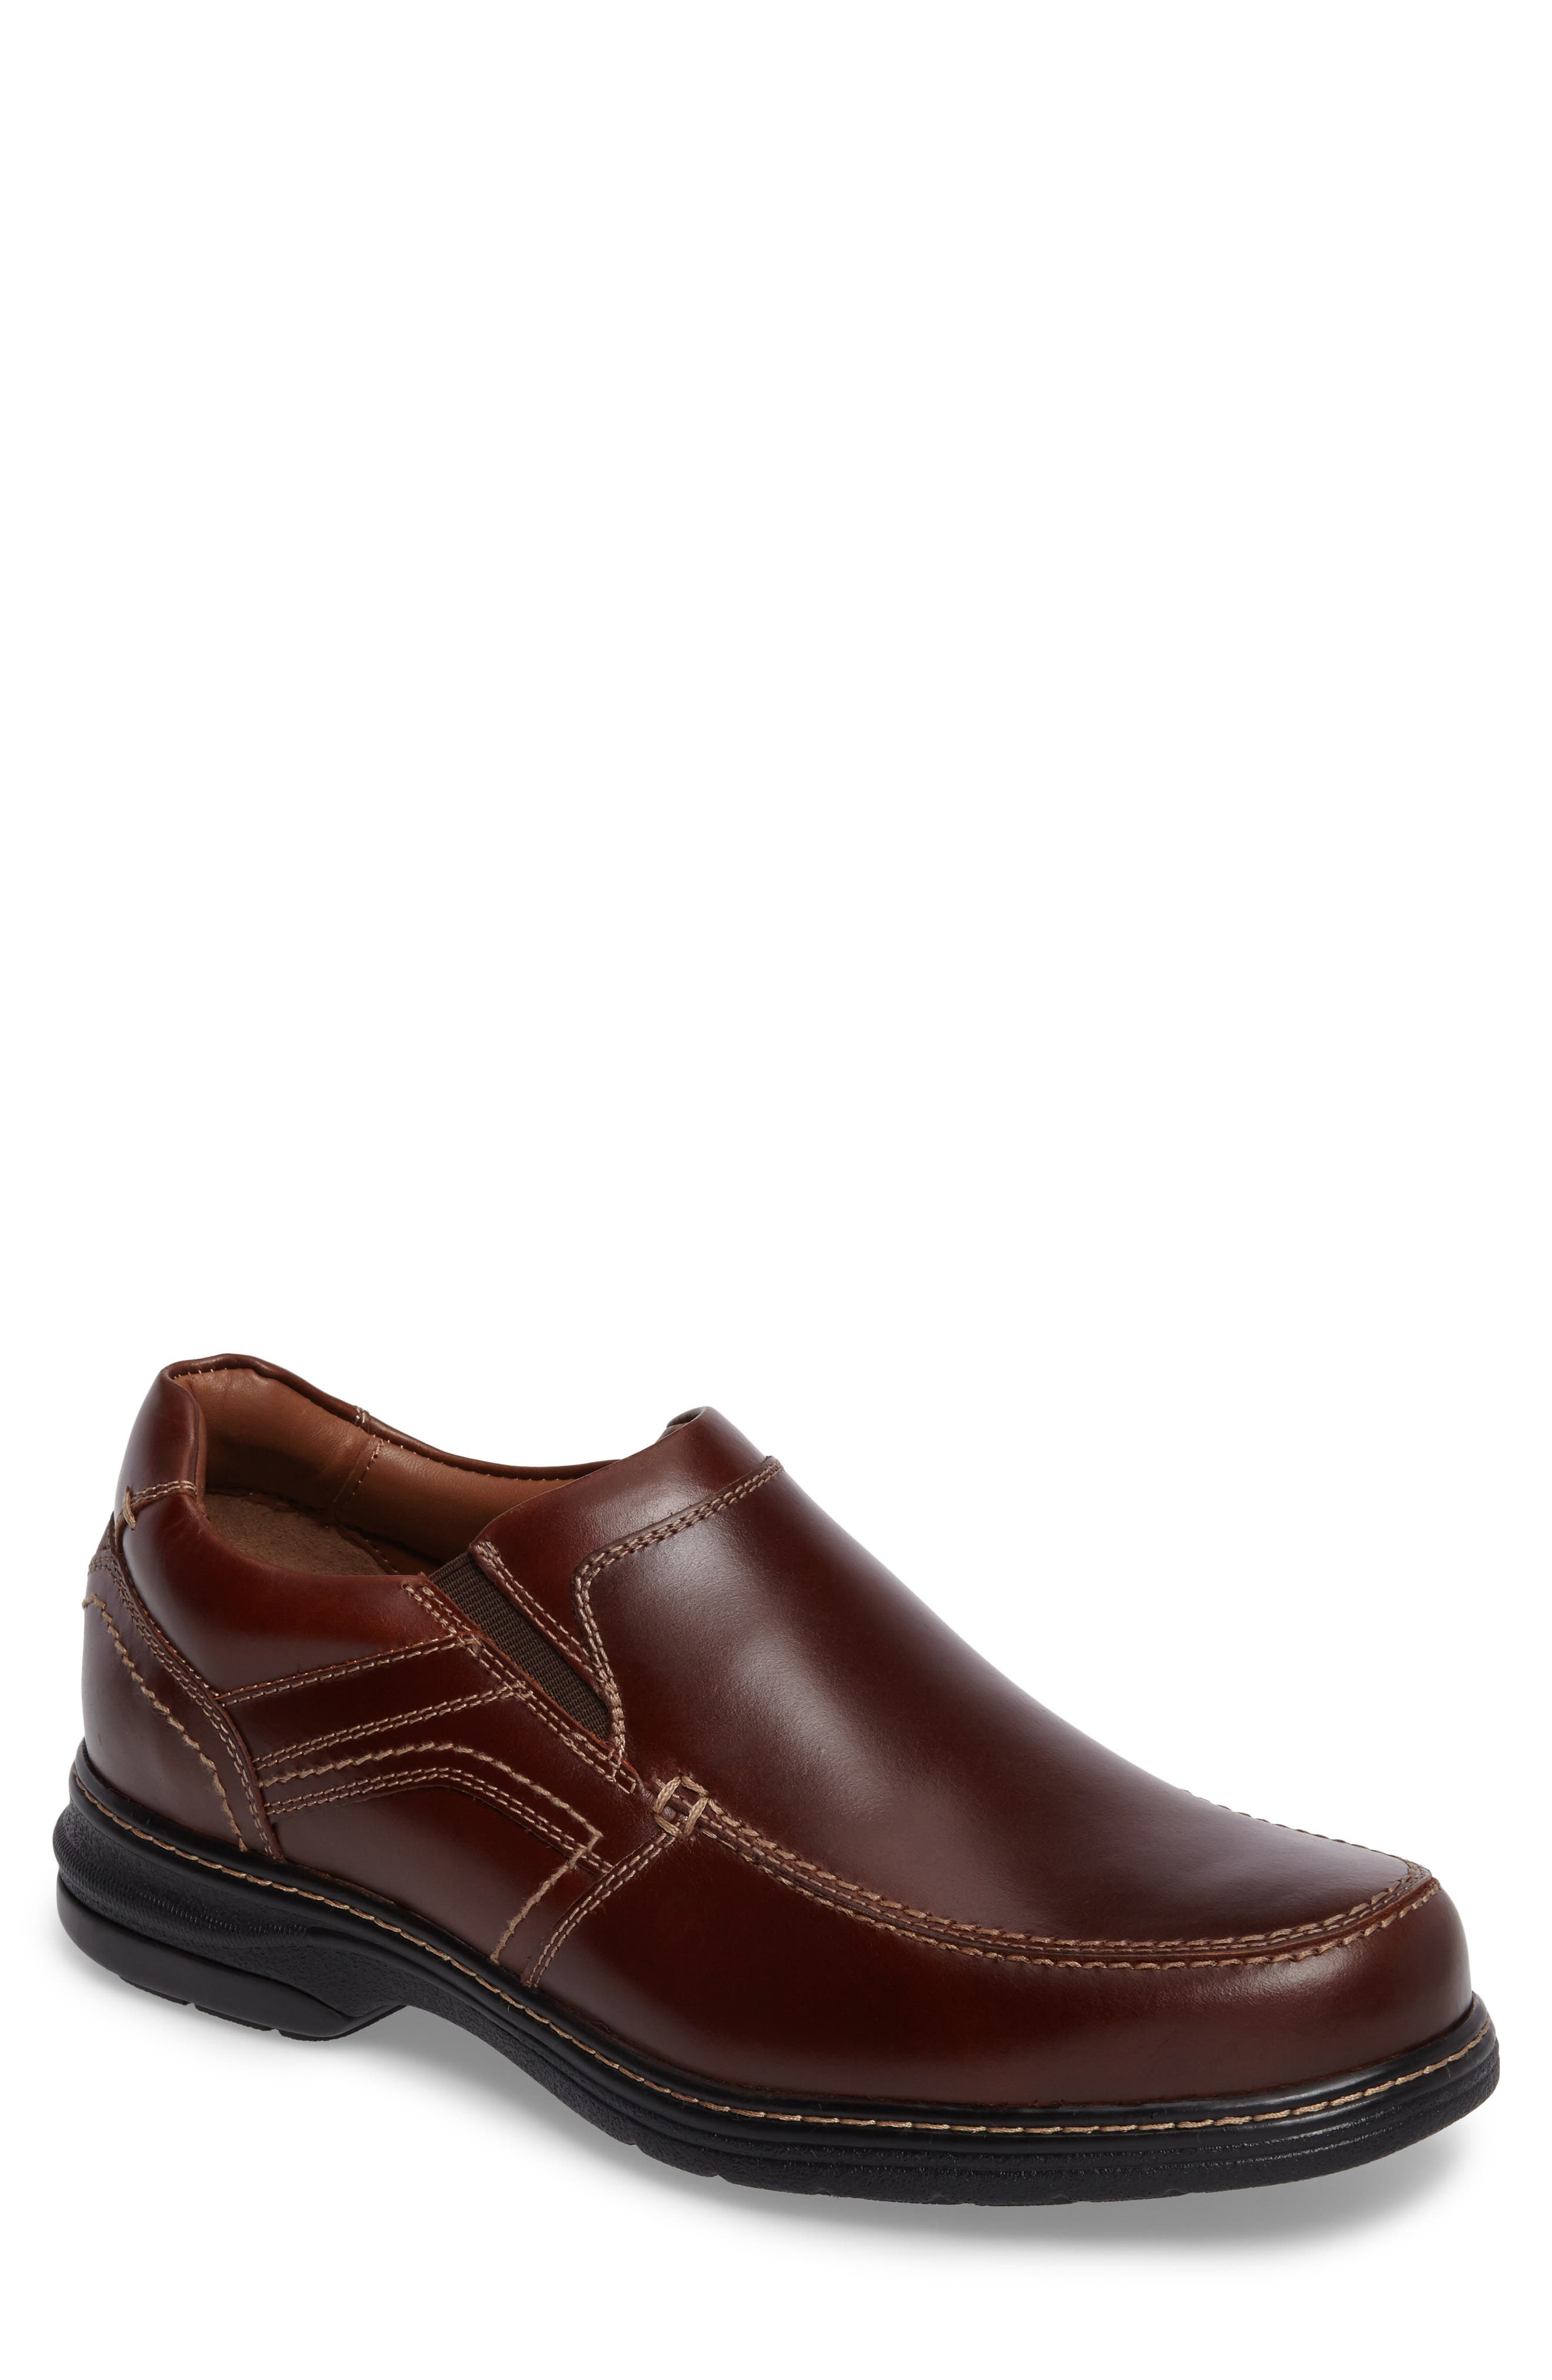 Johnston & Murphy Windham Waterproof Venetian Loafer, Brown